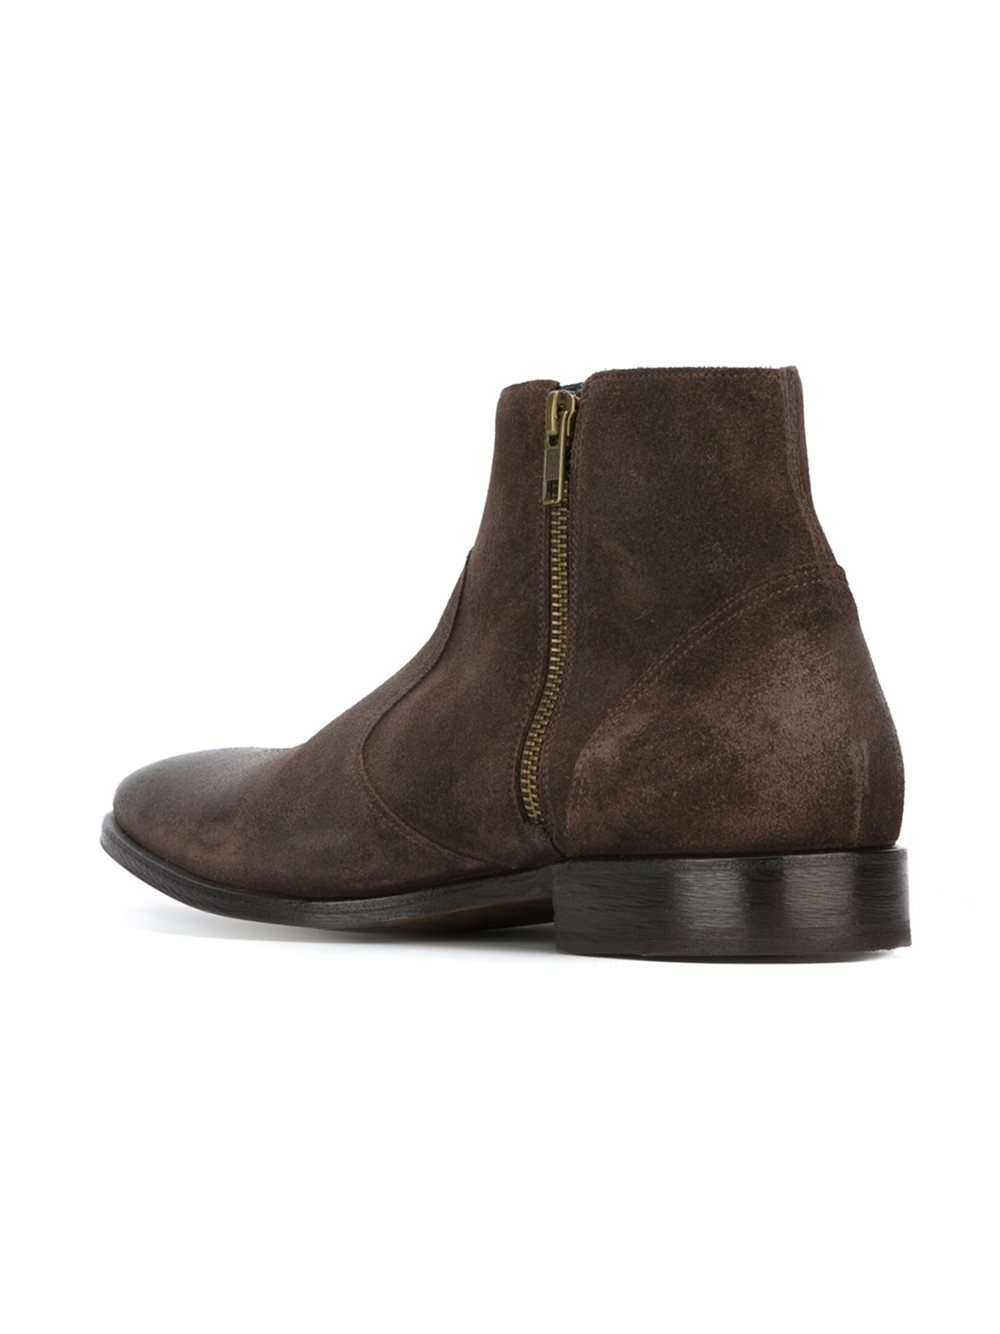 Pete Sorensen Hurricane Ankle Boots In Brown For Men Lyst